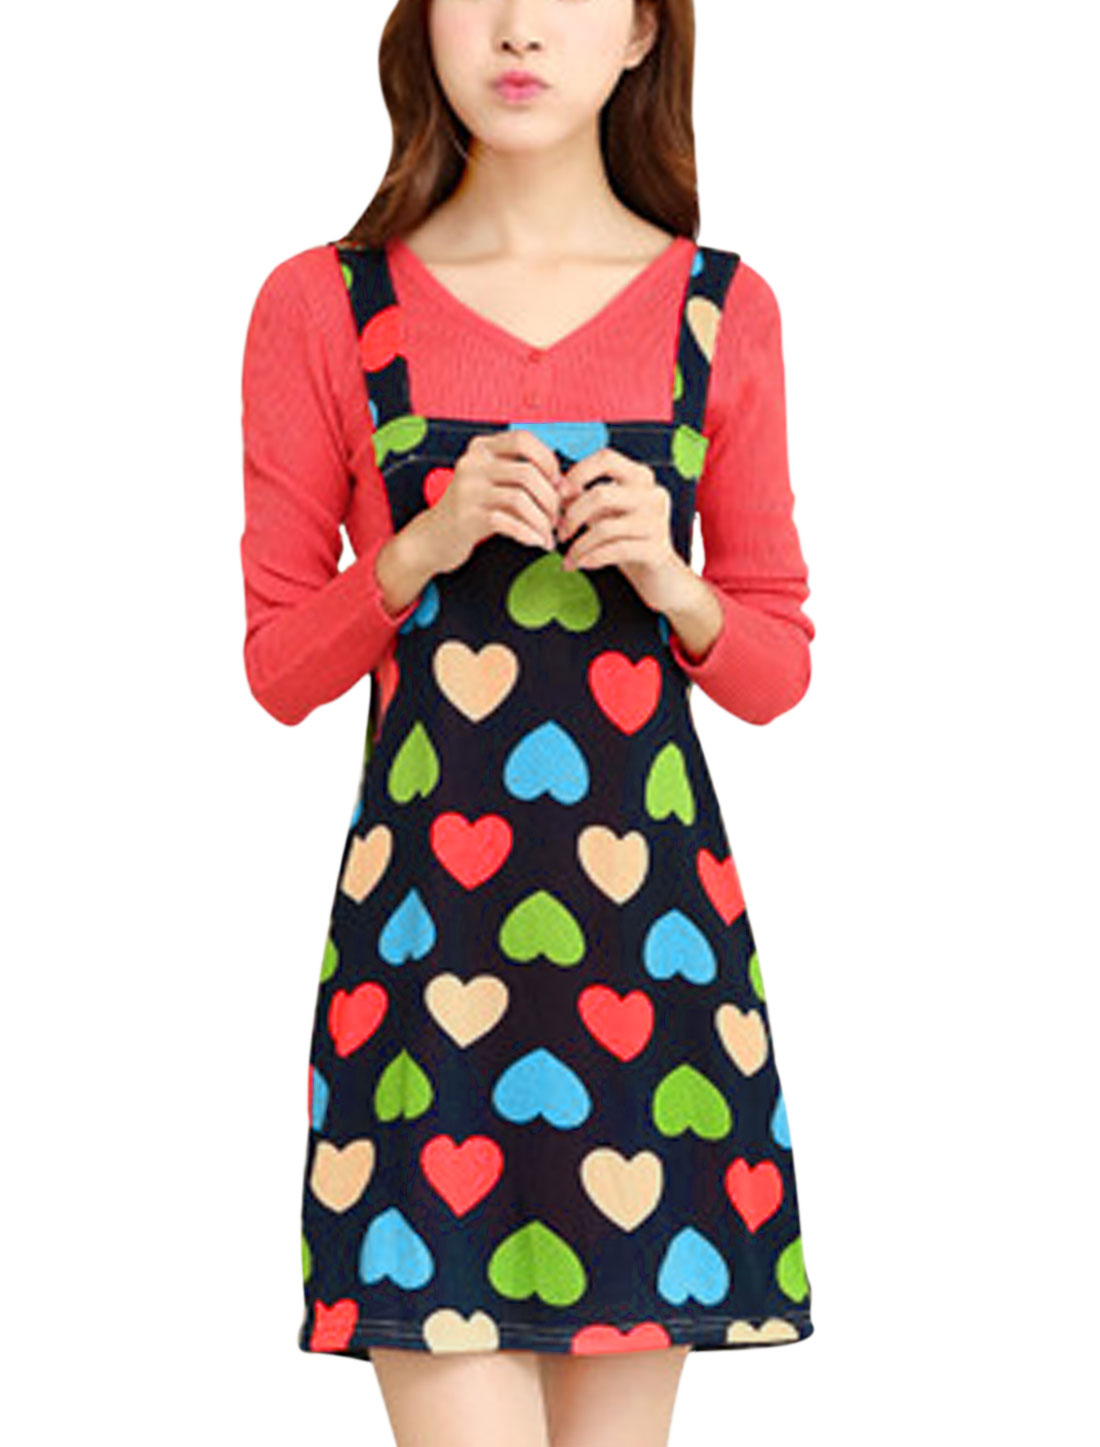 Lady Shoulder Straps Hearts Print Straight Knit Suspender Dress Navy Blue M